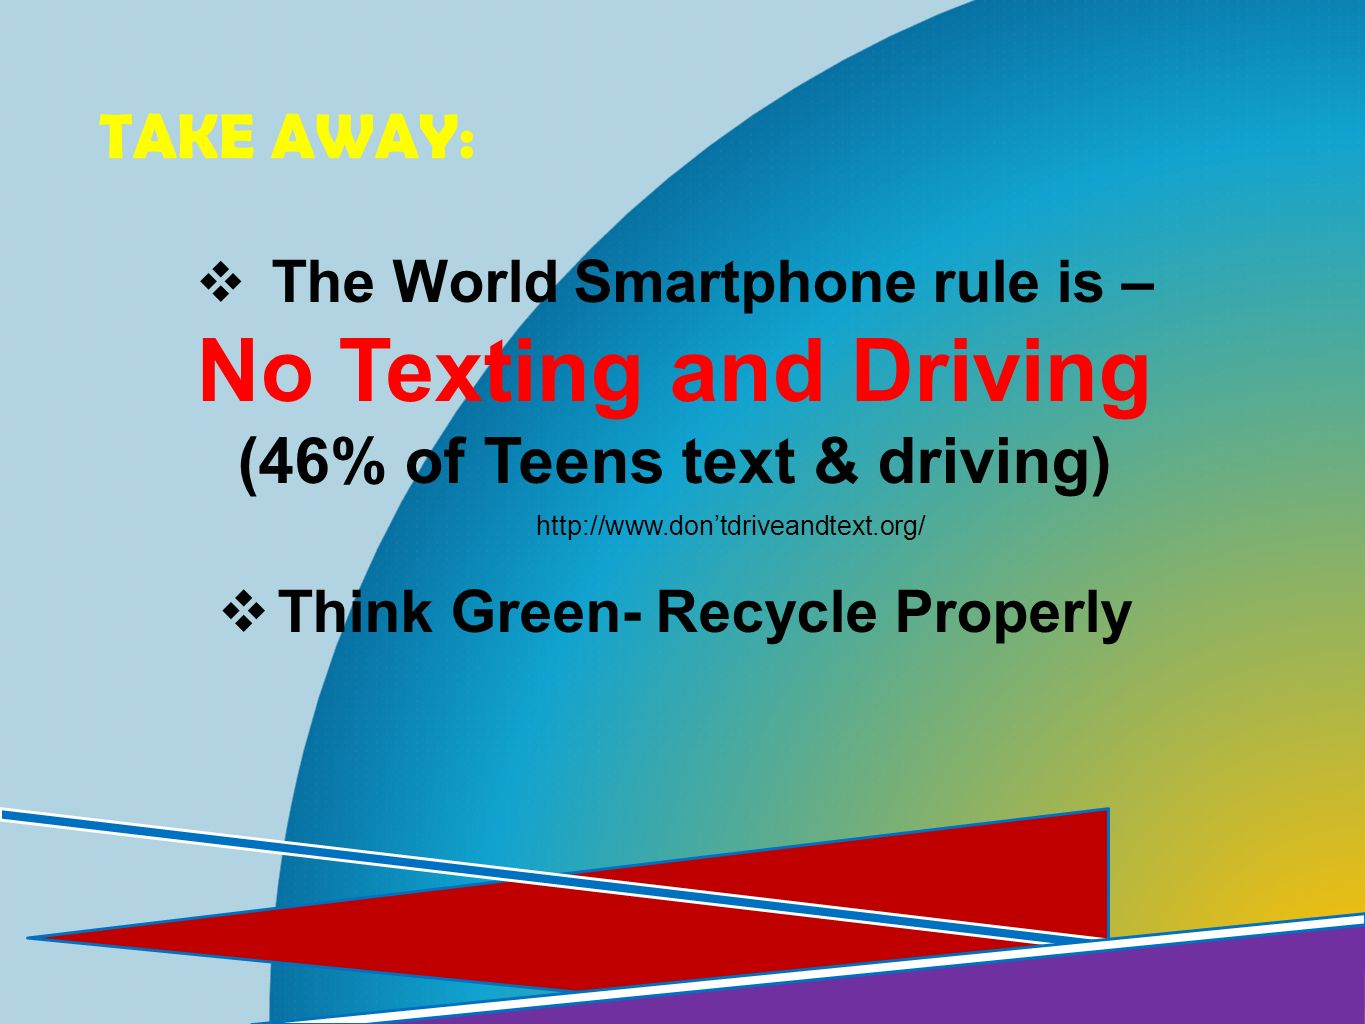 (46% of Teens text & driving) Think Green- Recycle Properly